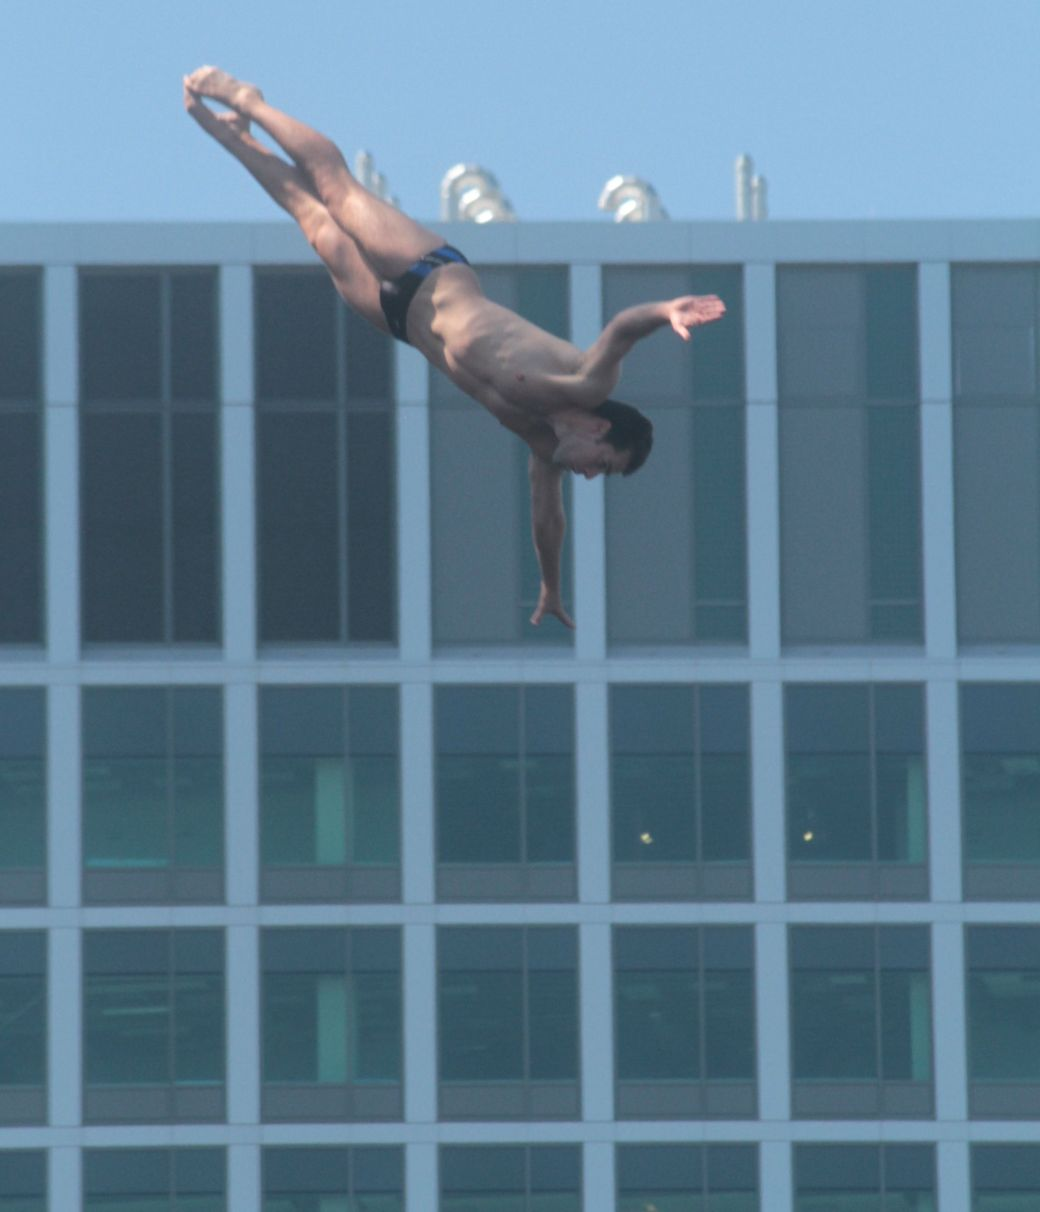 boston institute of contemporary art red bull diving competition august 25 2013 10